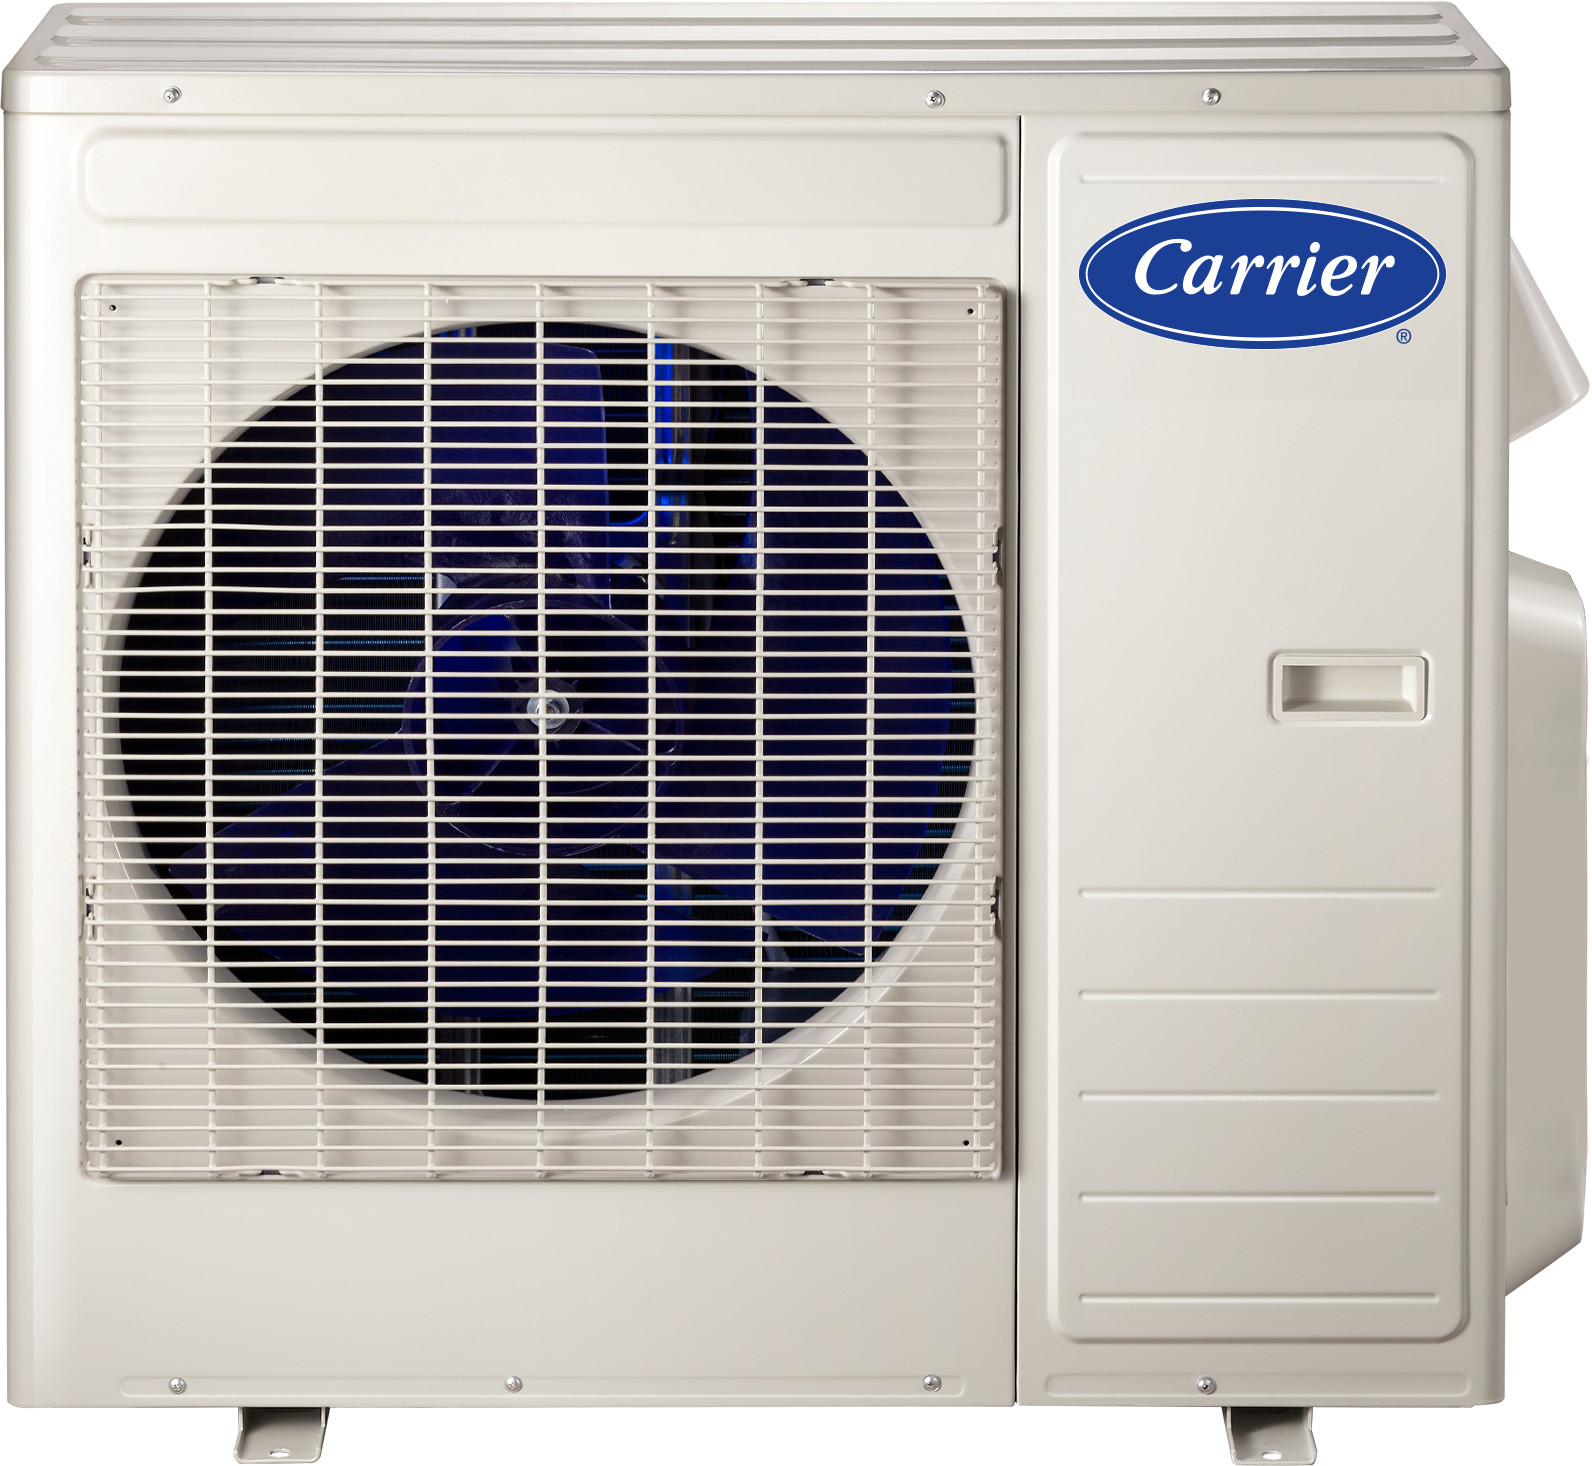 #253C84 Carrier 38MGQC183 18 000 BTU Mini Split Outdoor Air  Recommended 6867 Trane Makeup Air Unit pics with 1592x1466 px on helpvideos.info - Air Conditioners, Air Coolers and more